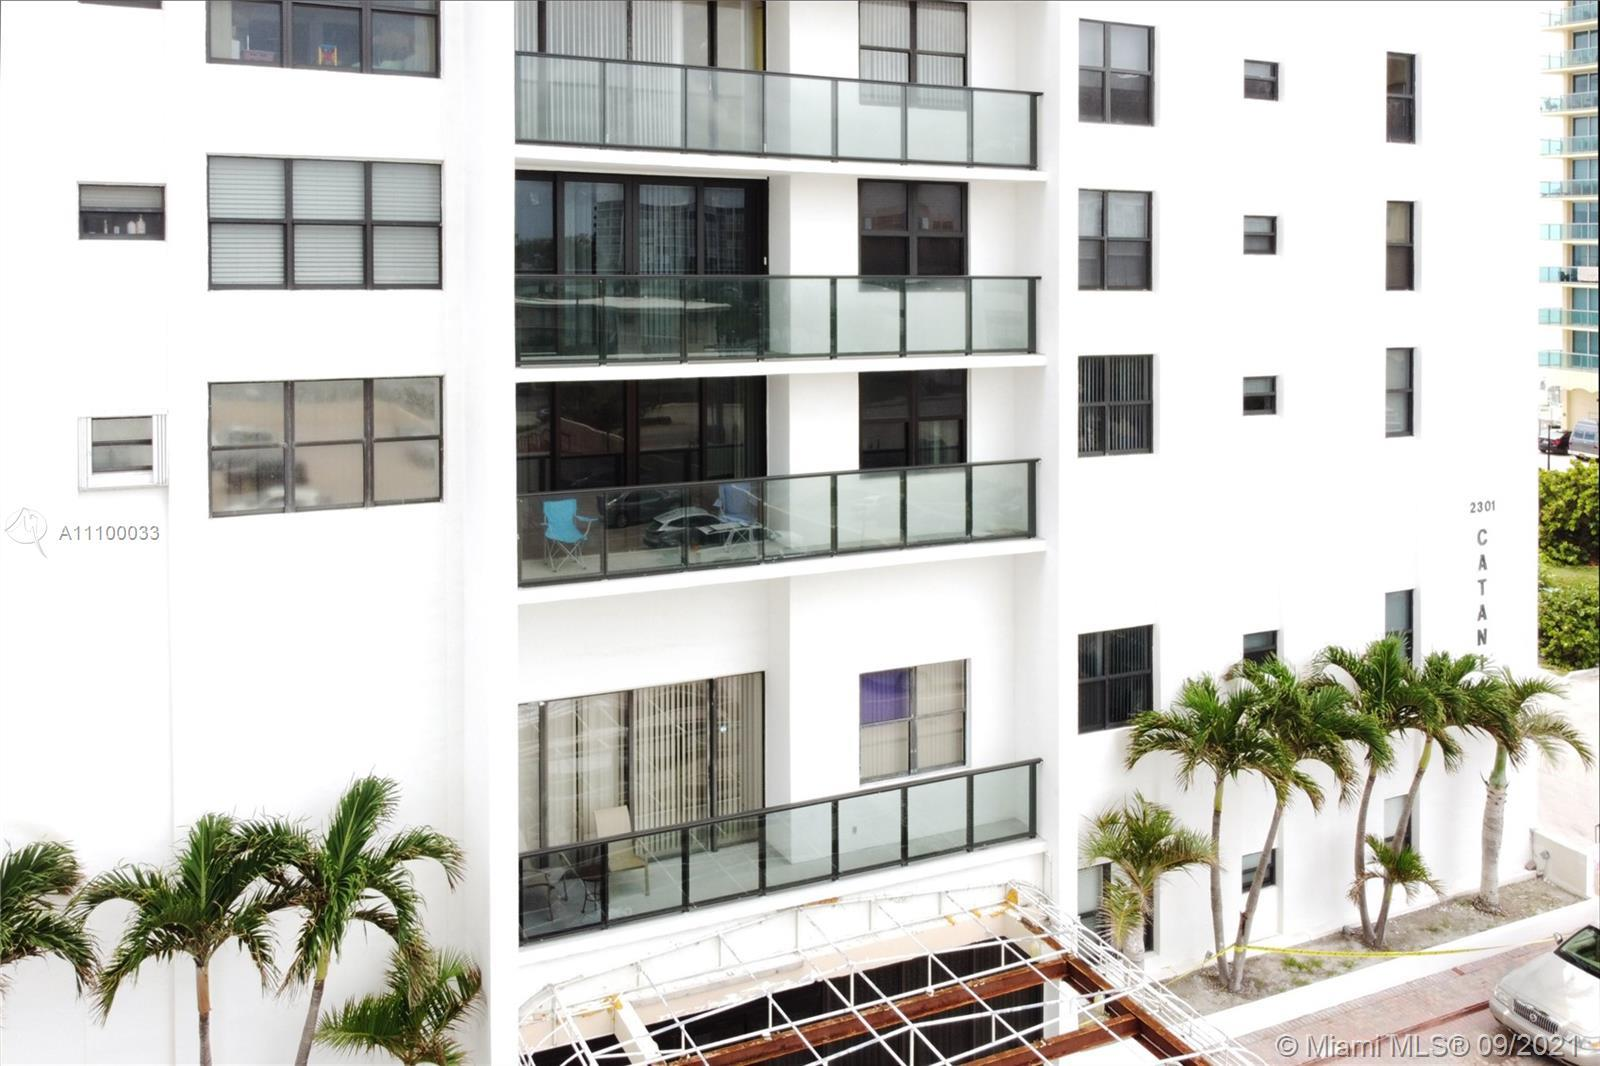 Beautiful 1/1.5 condo 1000 SF by the Ocean, 1 parking, 24 Hrs. Security/Concierge, impact windows/Do